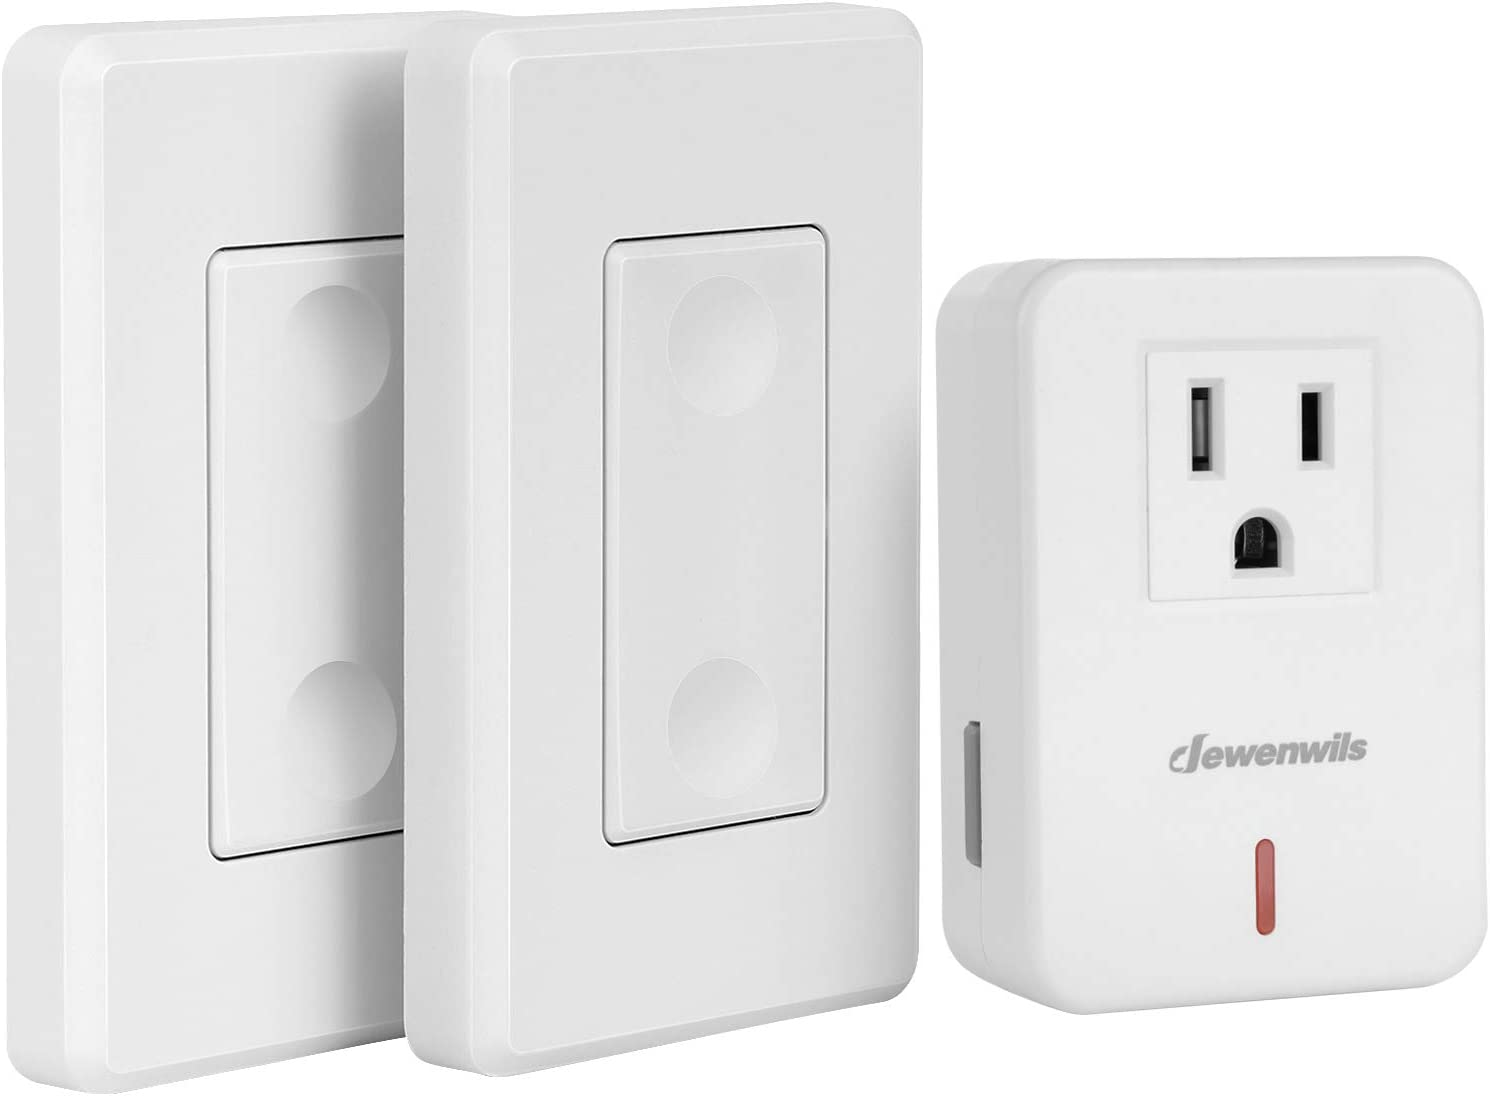 Dewenwils Wireless Remote Wall Switch And Outlet Plug In Remote Control Light Switch No Wiring Expandable 100 Ft Rf Range Etl Listed 2 Switches And 1 Receiver Amazon Com